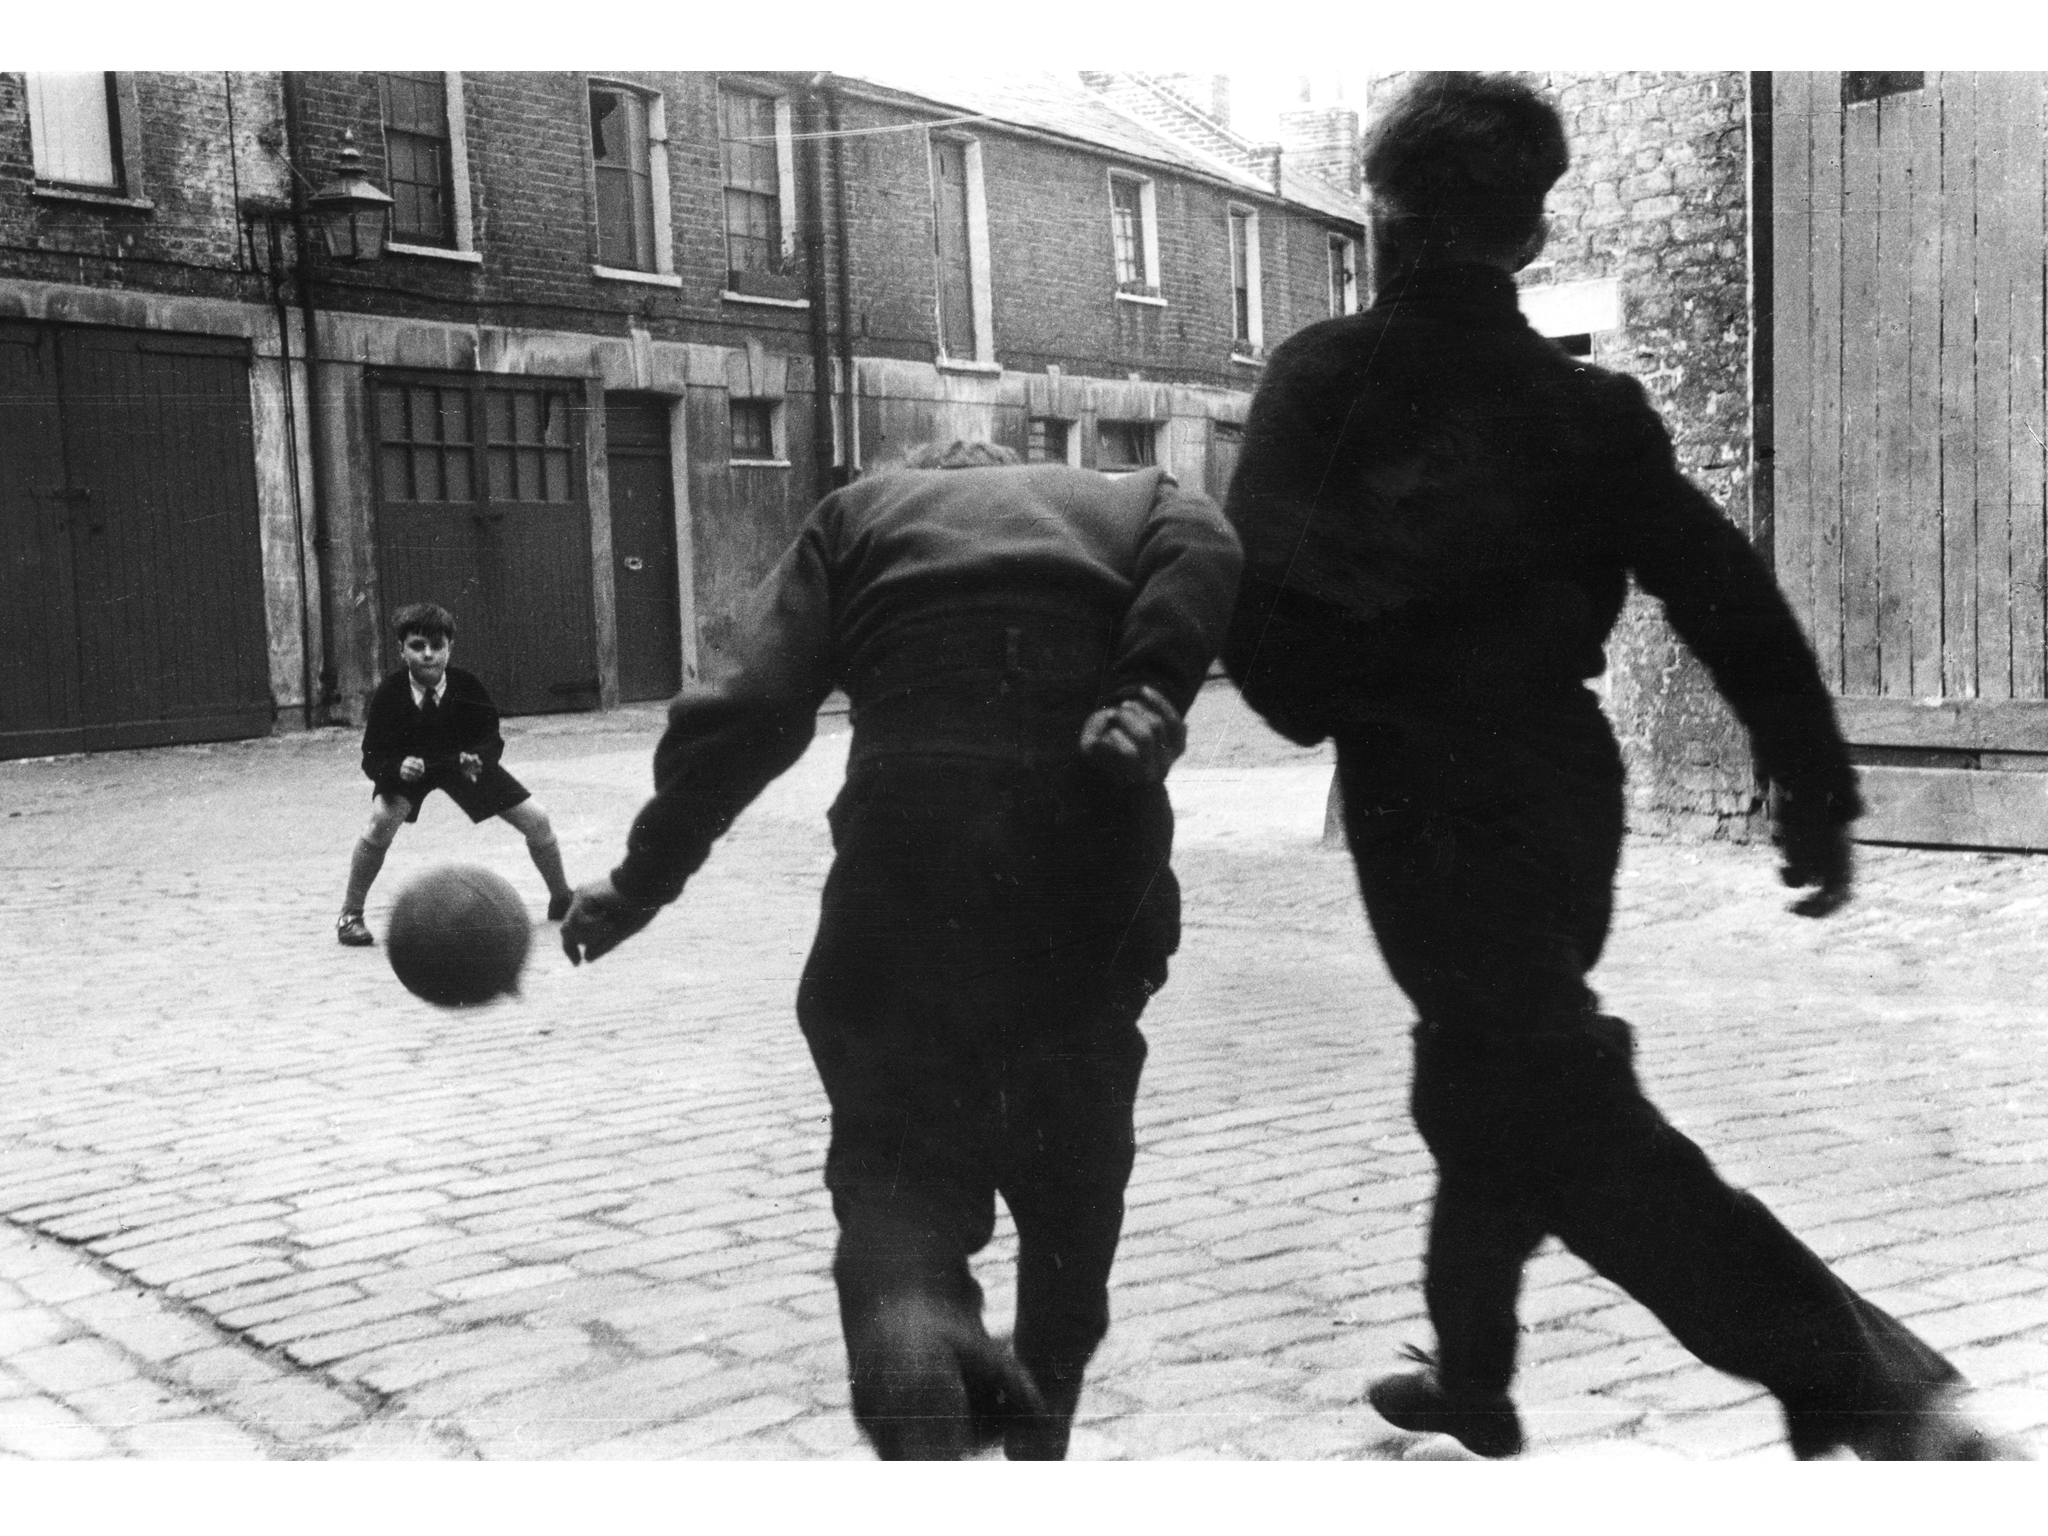 Best London photos: Roger Mayne: Football, Addison Place, North Kensington, 1956. © Roger Mayne/Mary Evans Picture Library